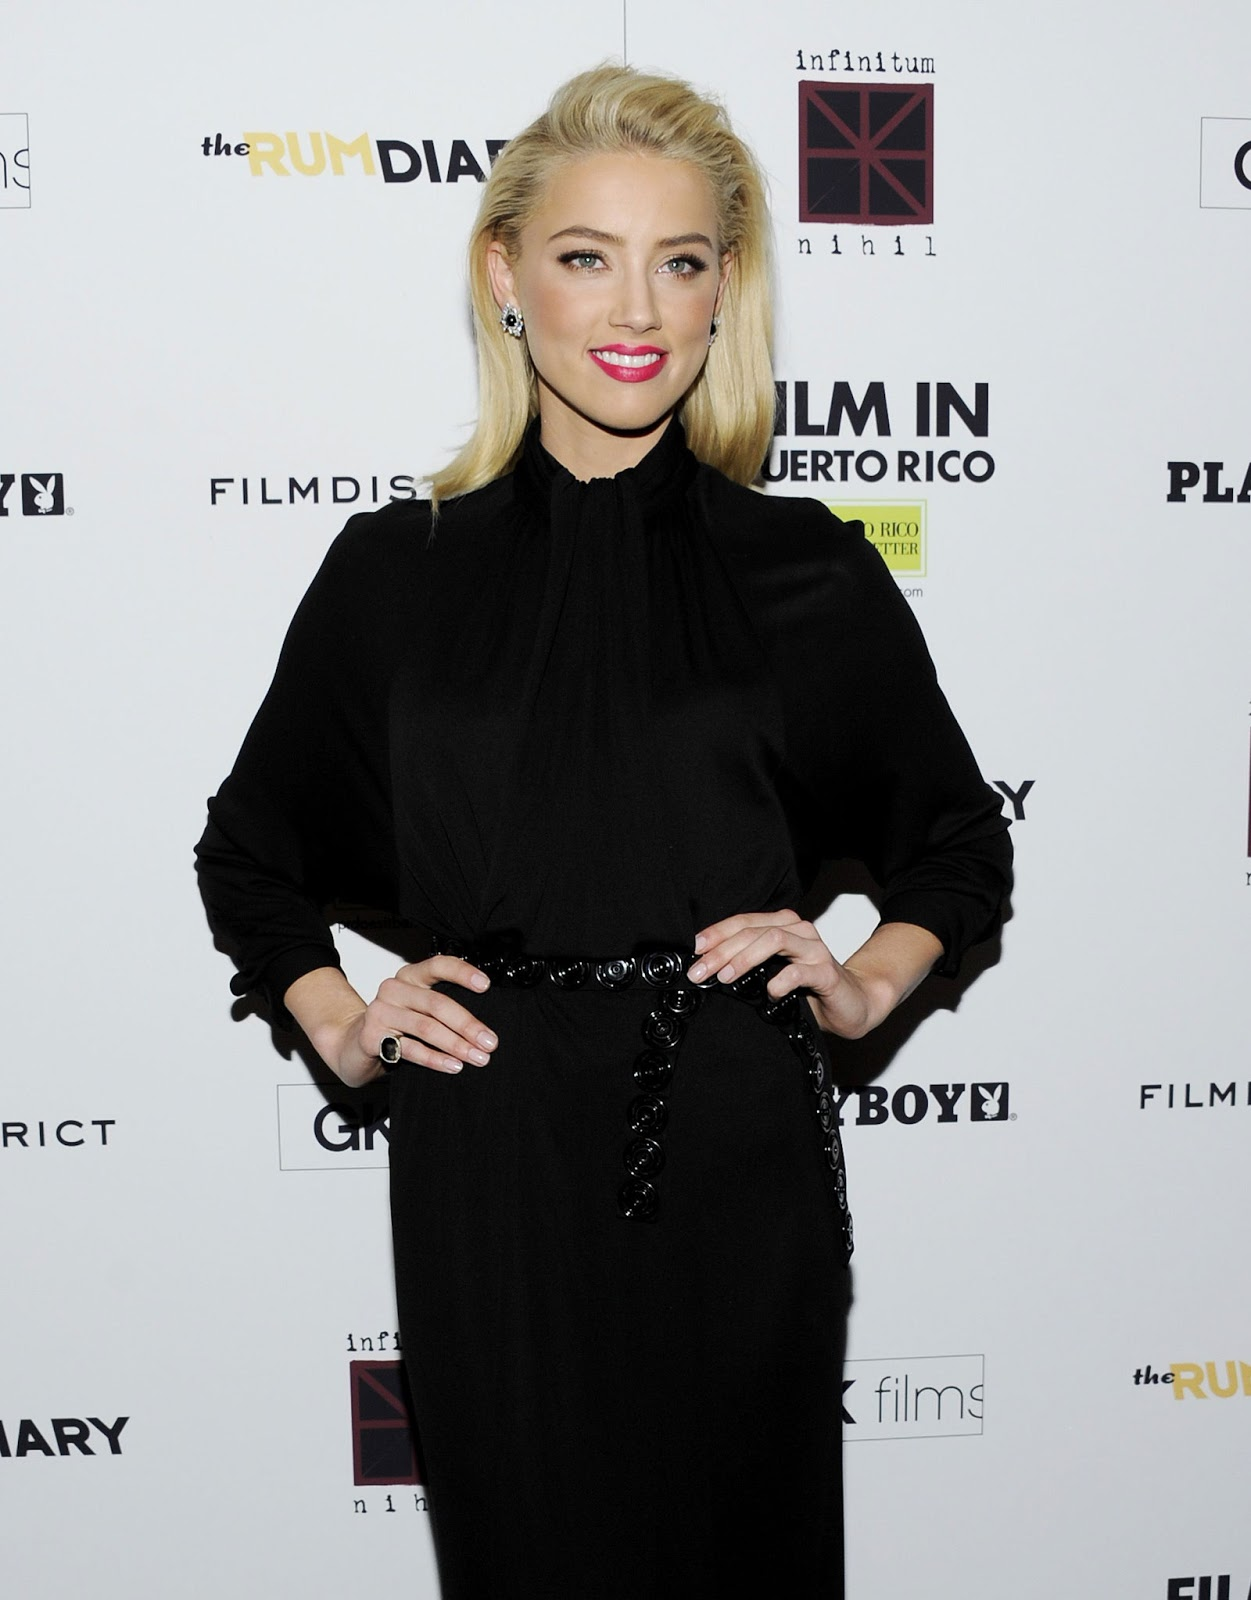 Amber Heard at The Rum Diary Premiere